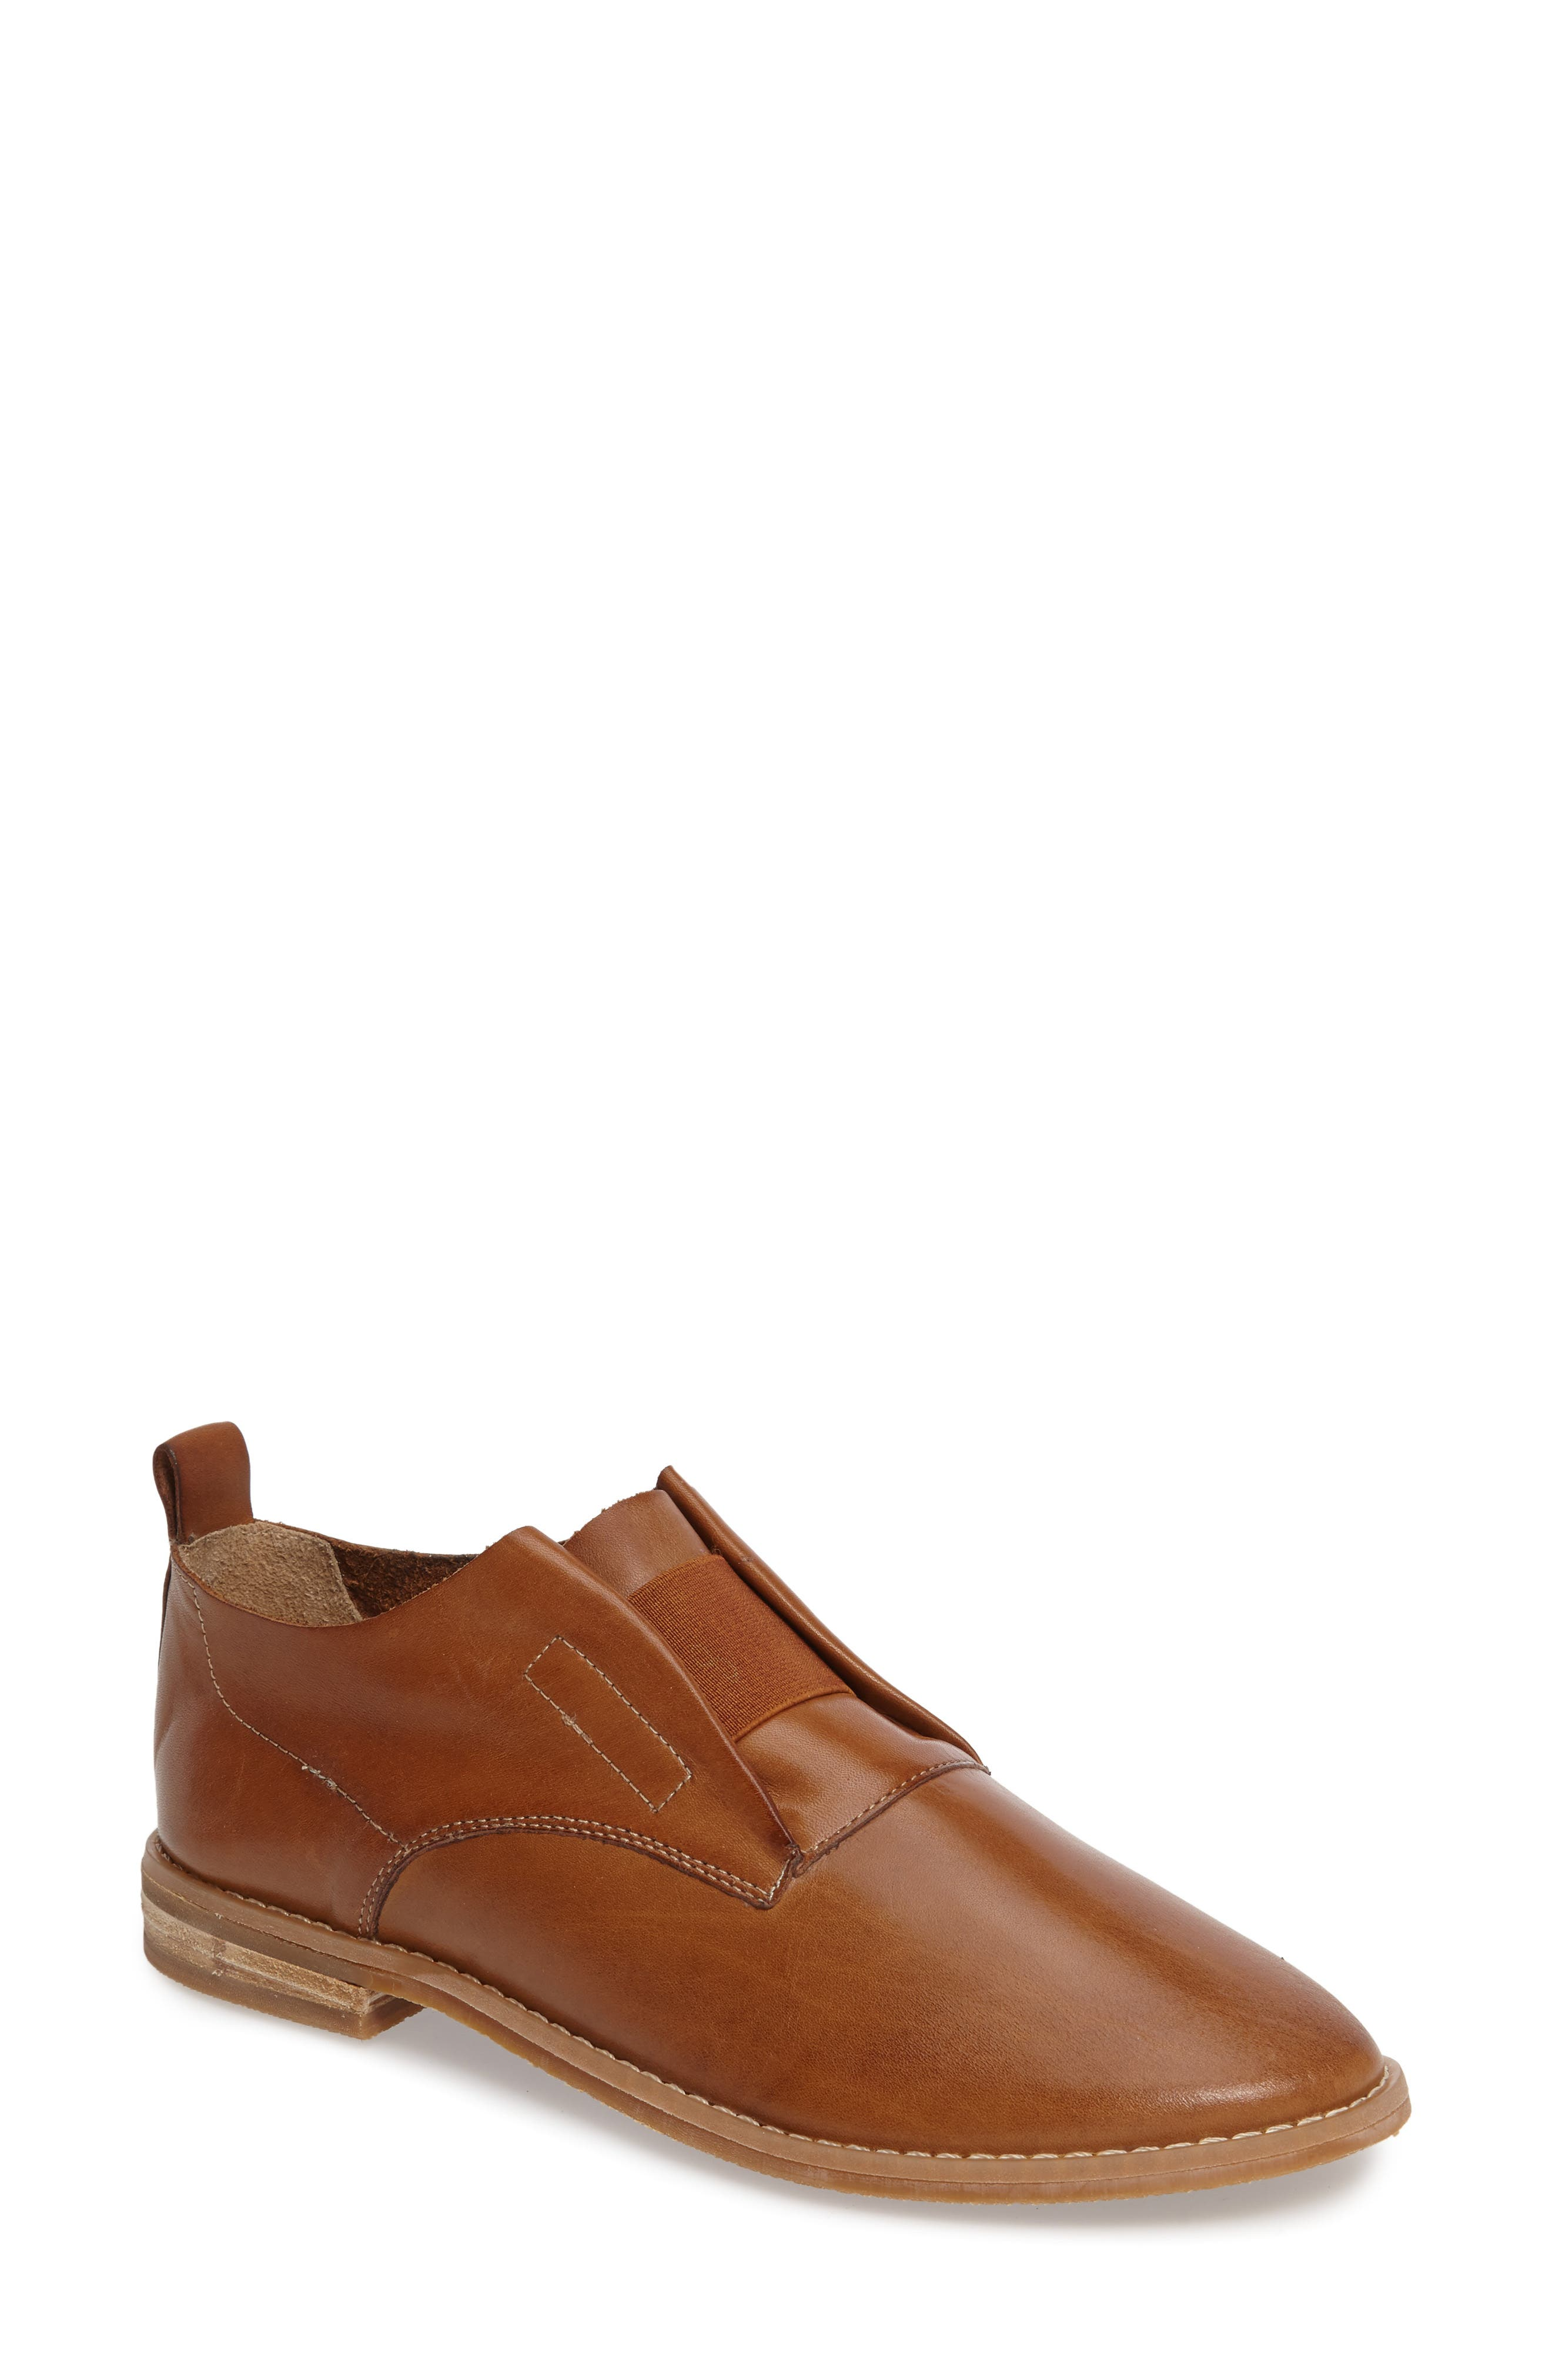 Main Image - Hush Puppies® Annerly Clever Flat (Women)